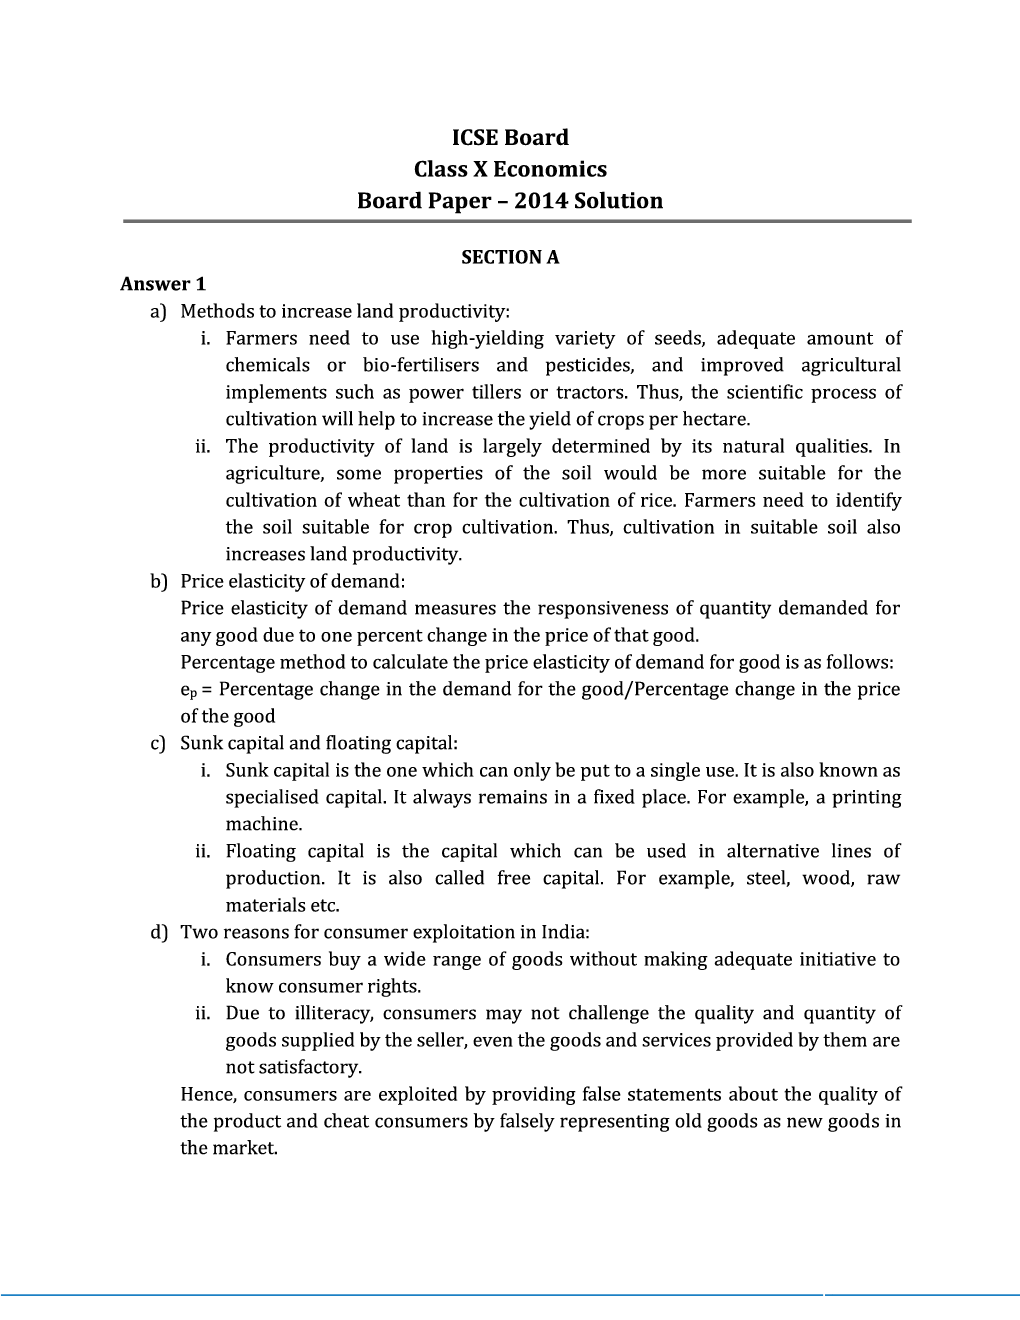 ICSE Sample Question Papers For Class 10 Economics - Page 4